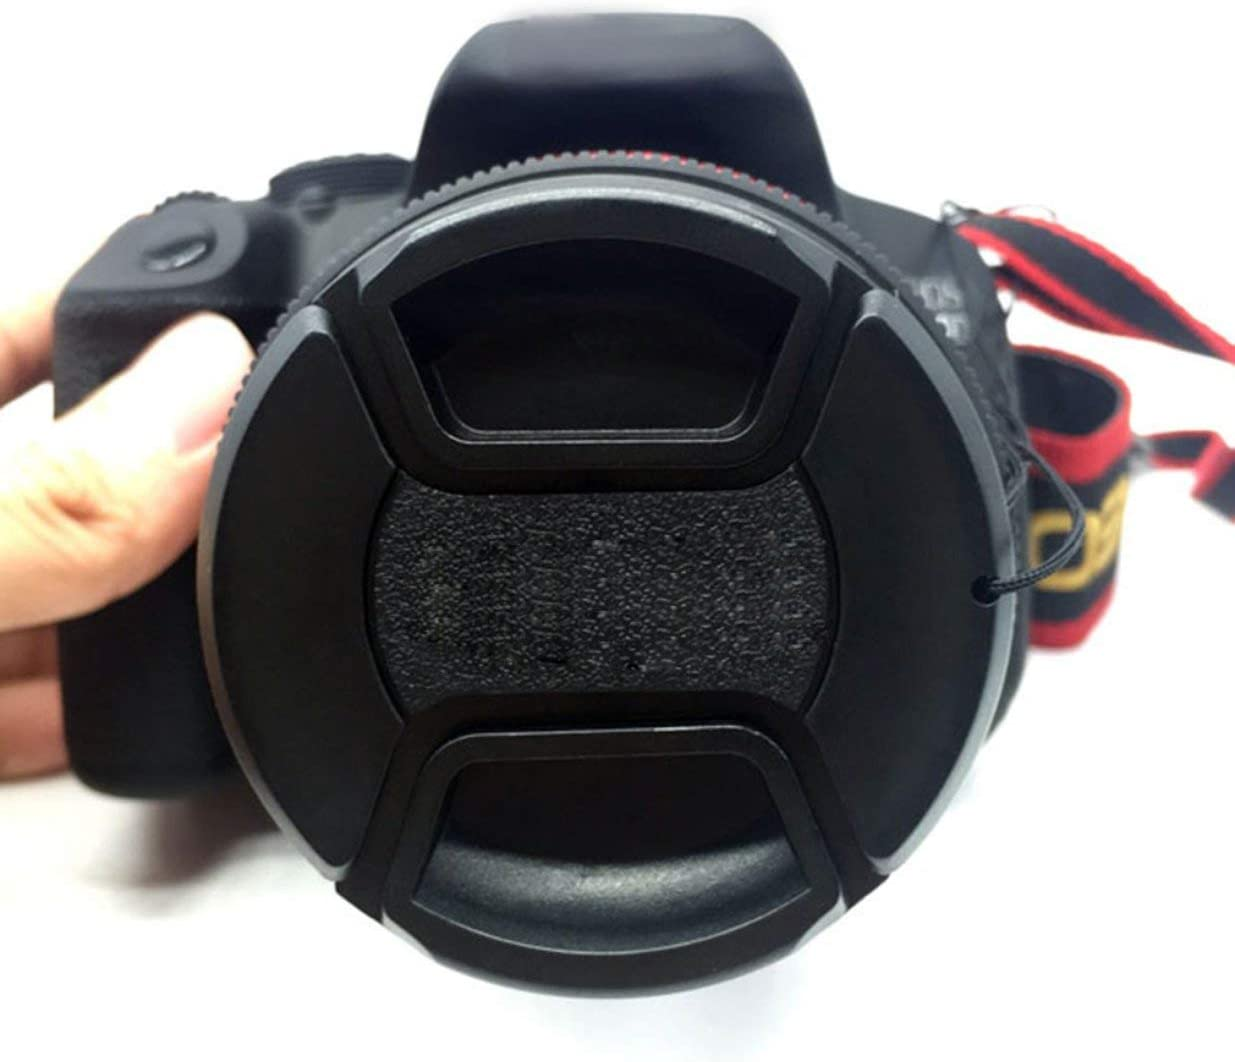 Professional 52mm Front Lens Hood Cap Cover for All Canon Lens Filter with Cord New Cap Cover Center Pinch Snap Black